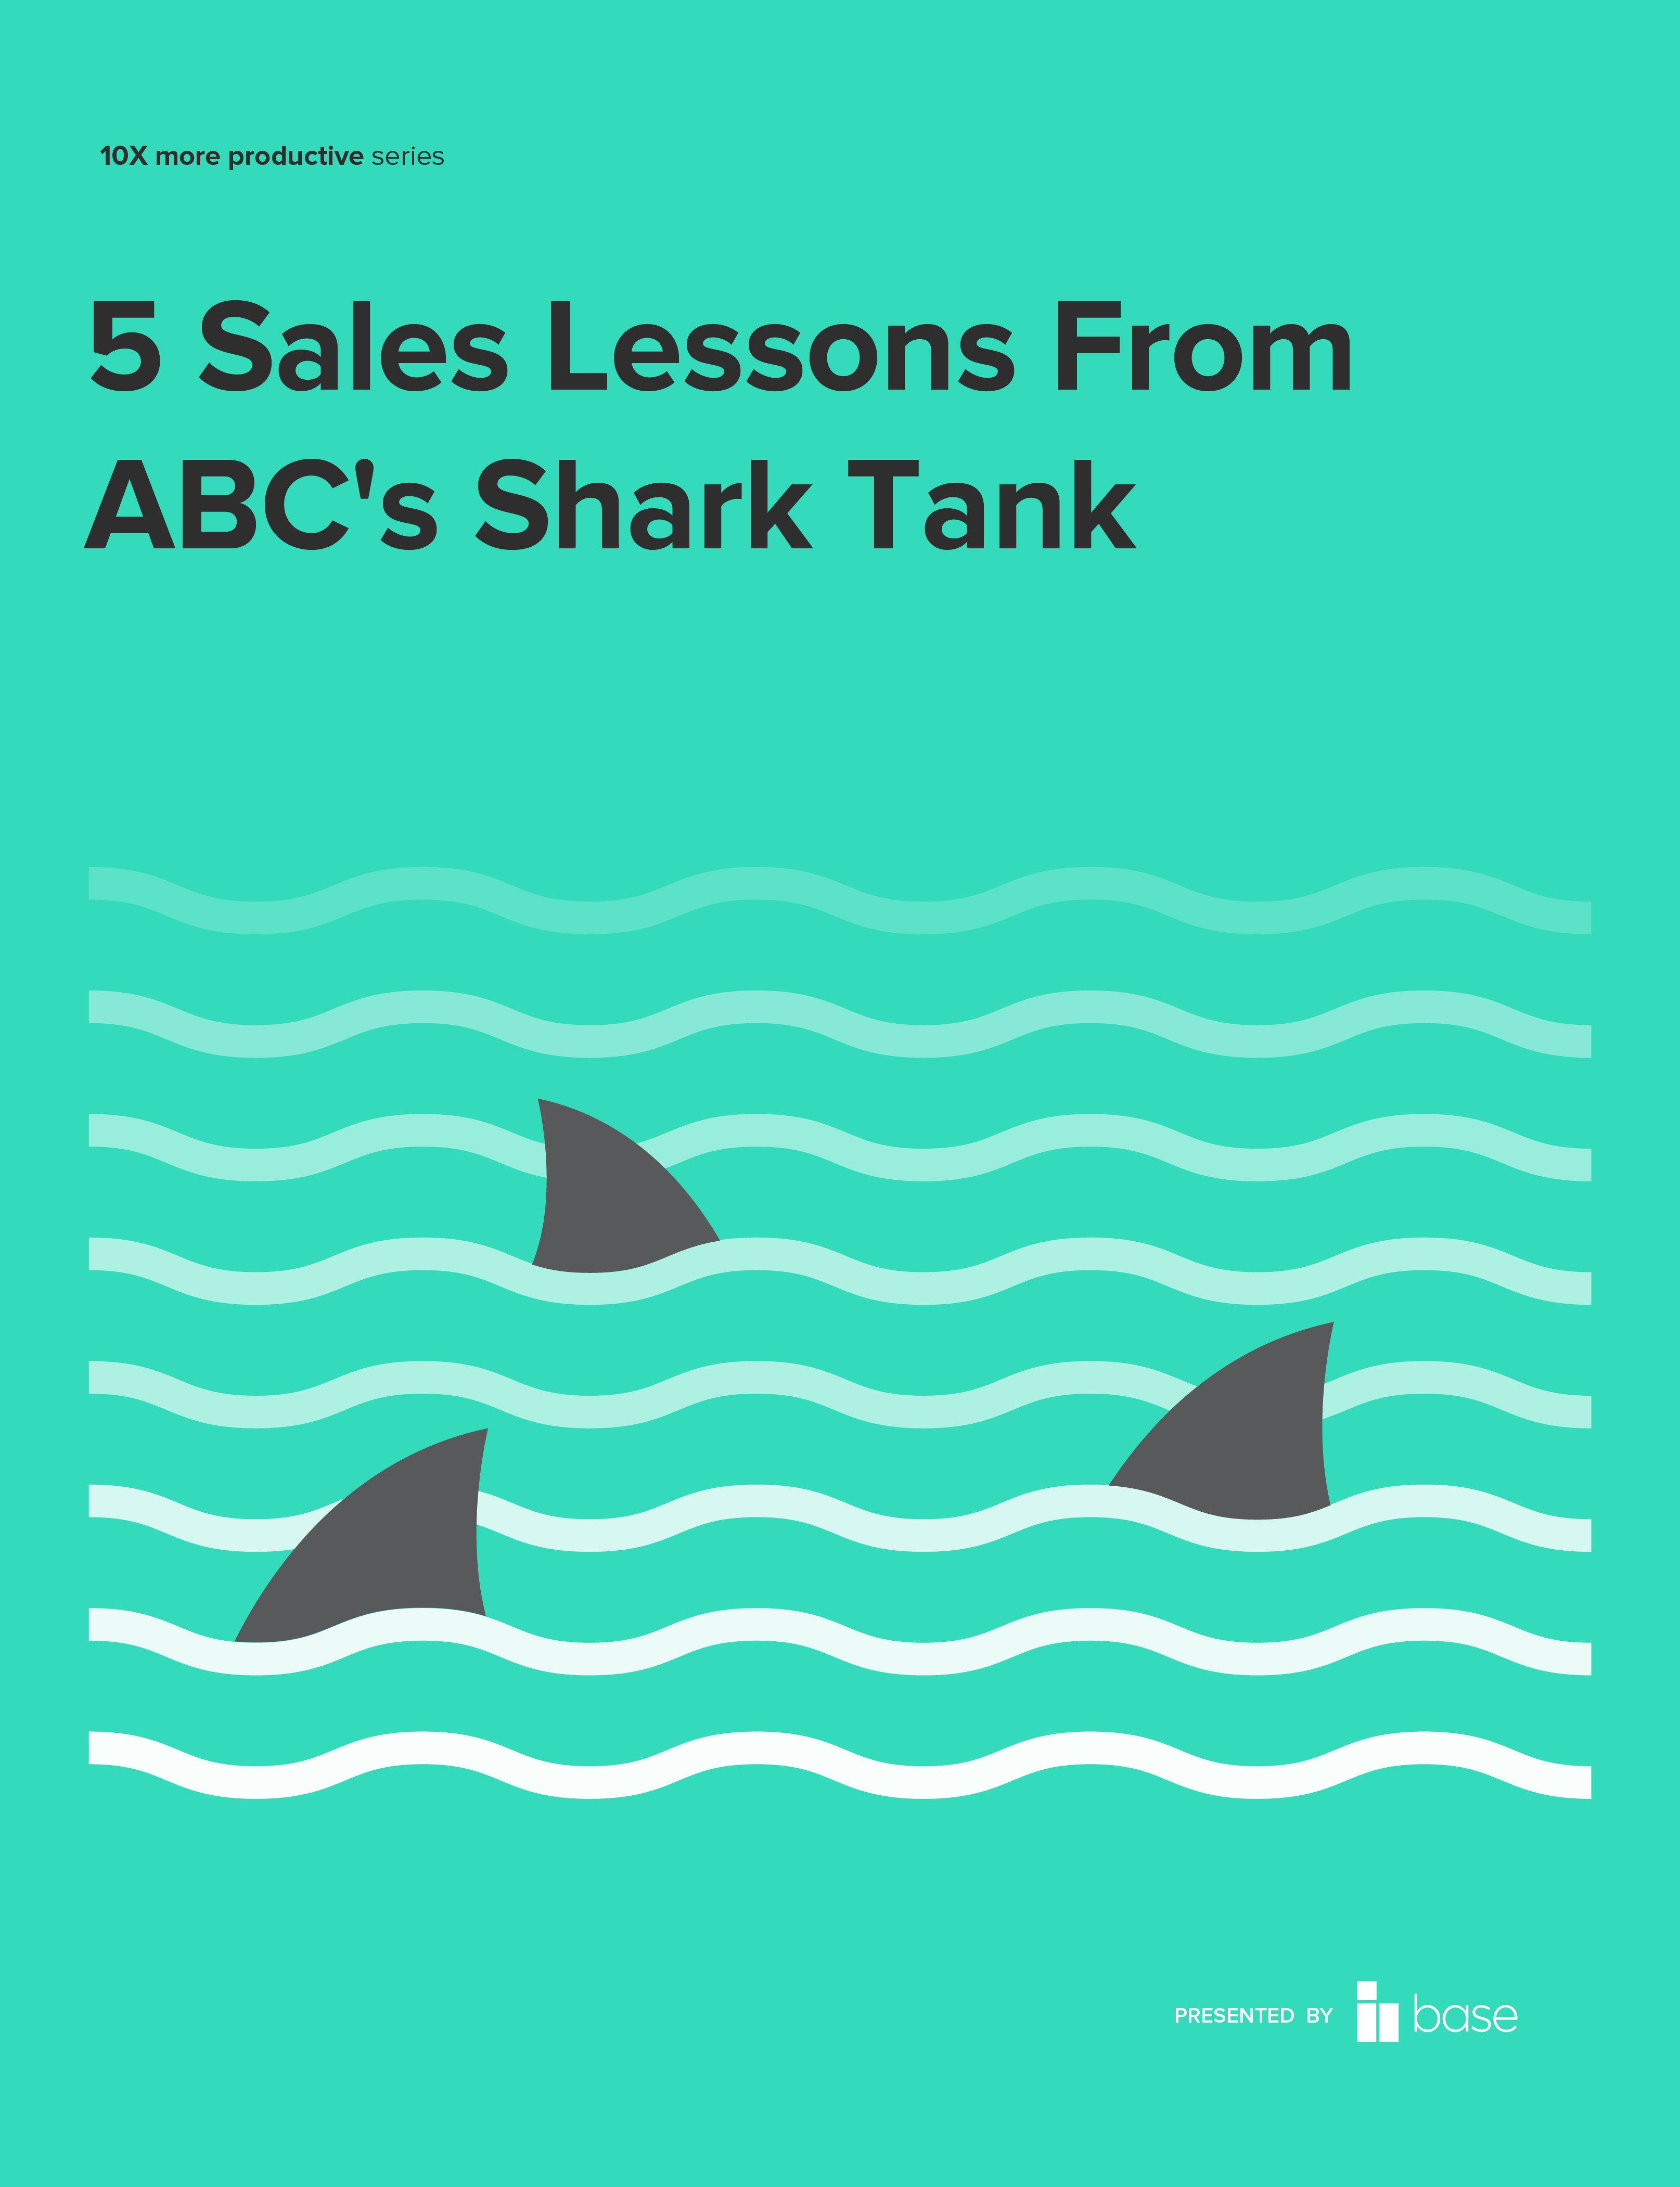 5_Sales_Lesson_From_ABC_Shark_Tank-3.png